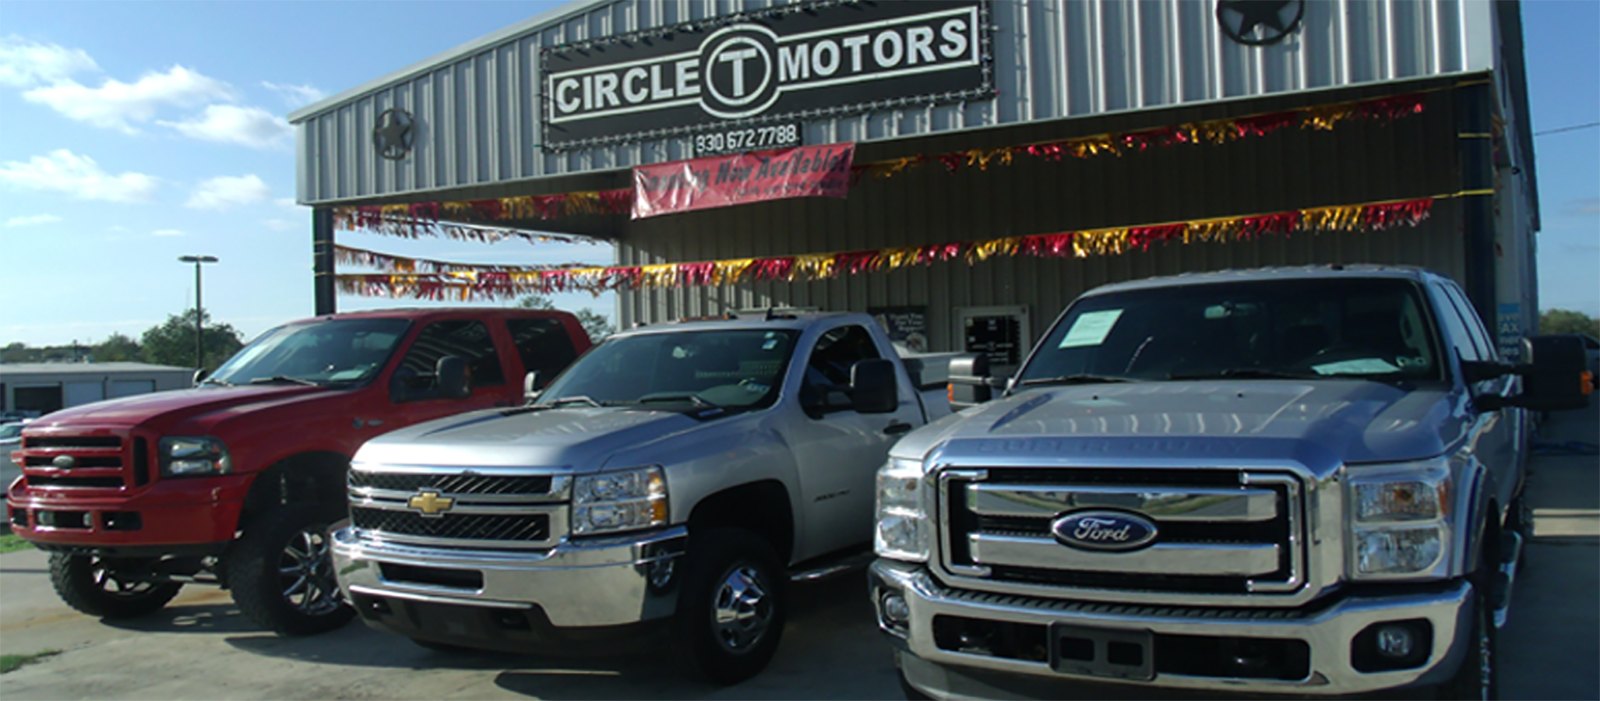 Circle T Motors Inc Car Dealer In Gonzales Tx